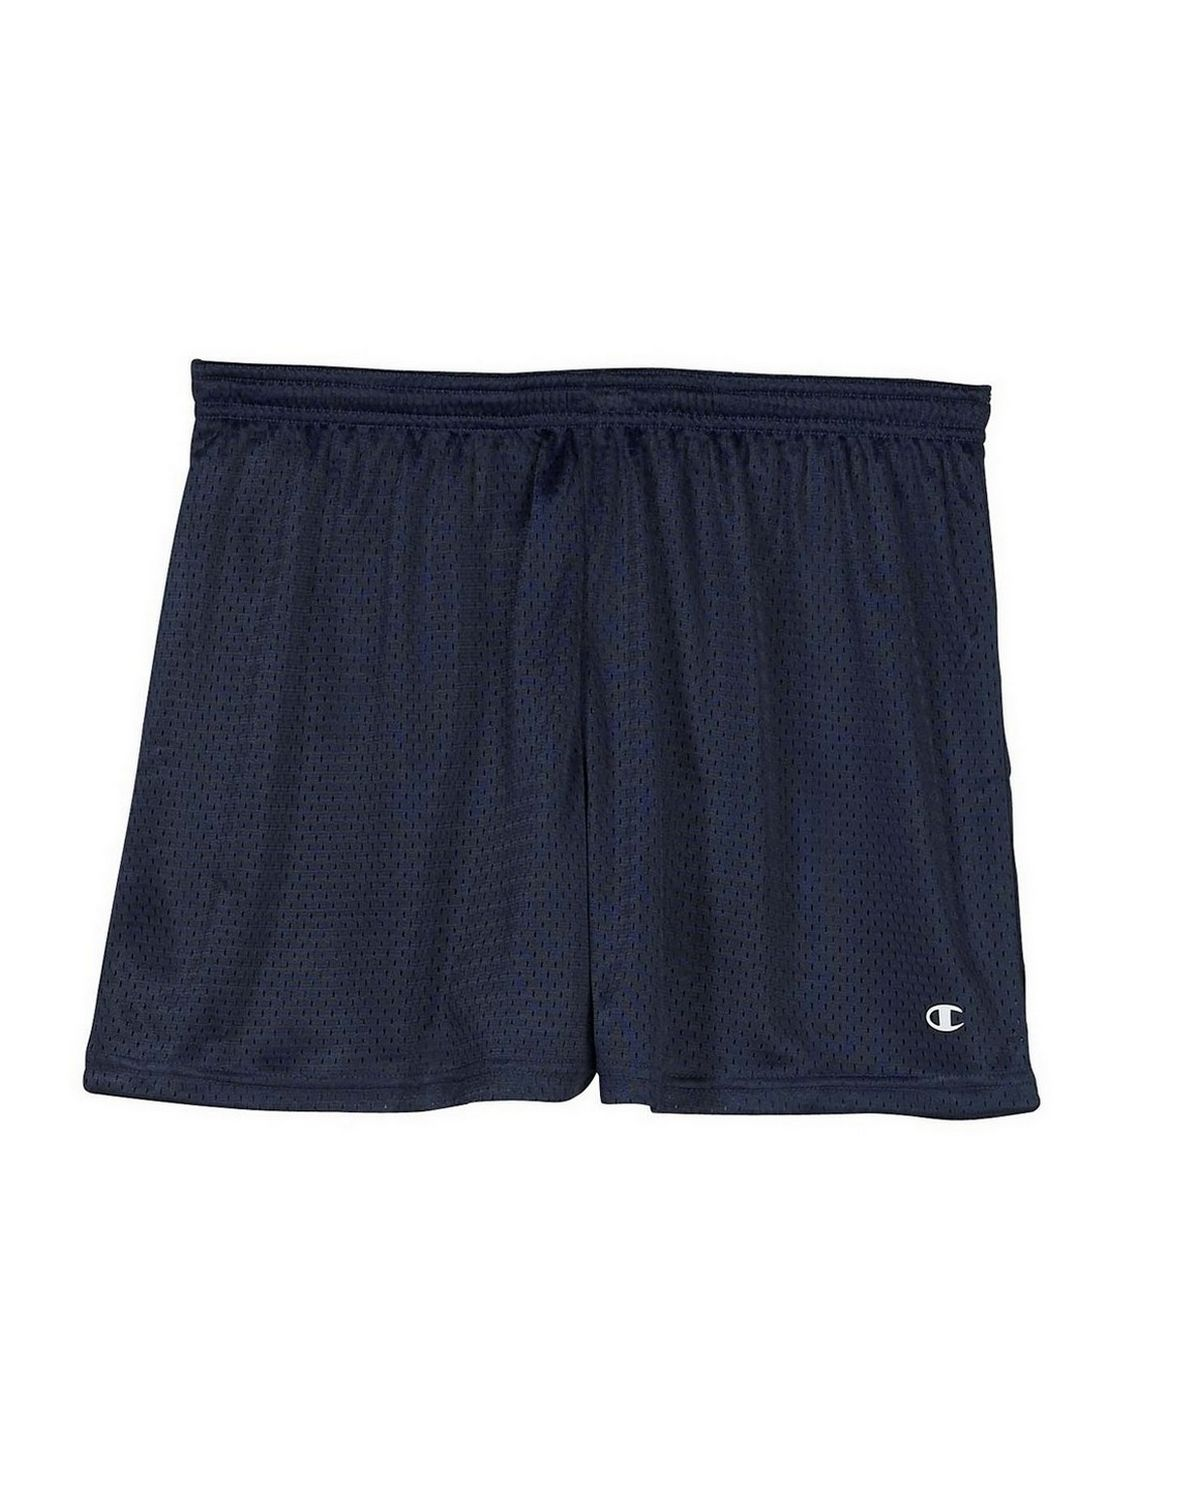 Champion 3393 Active Mesh Shorts - Navy - M 3393